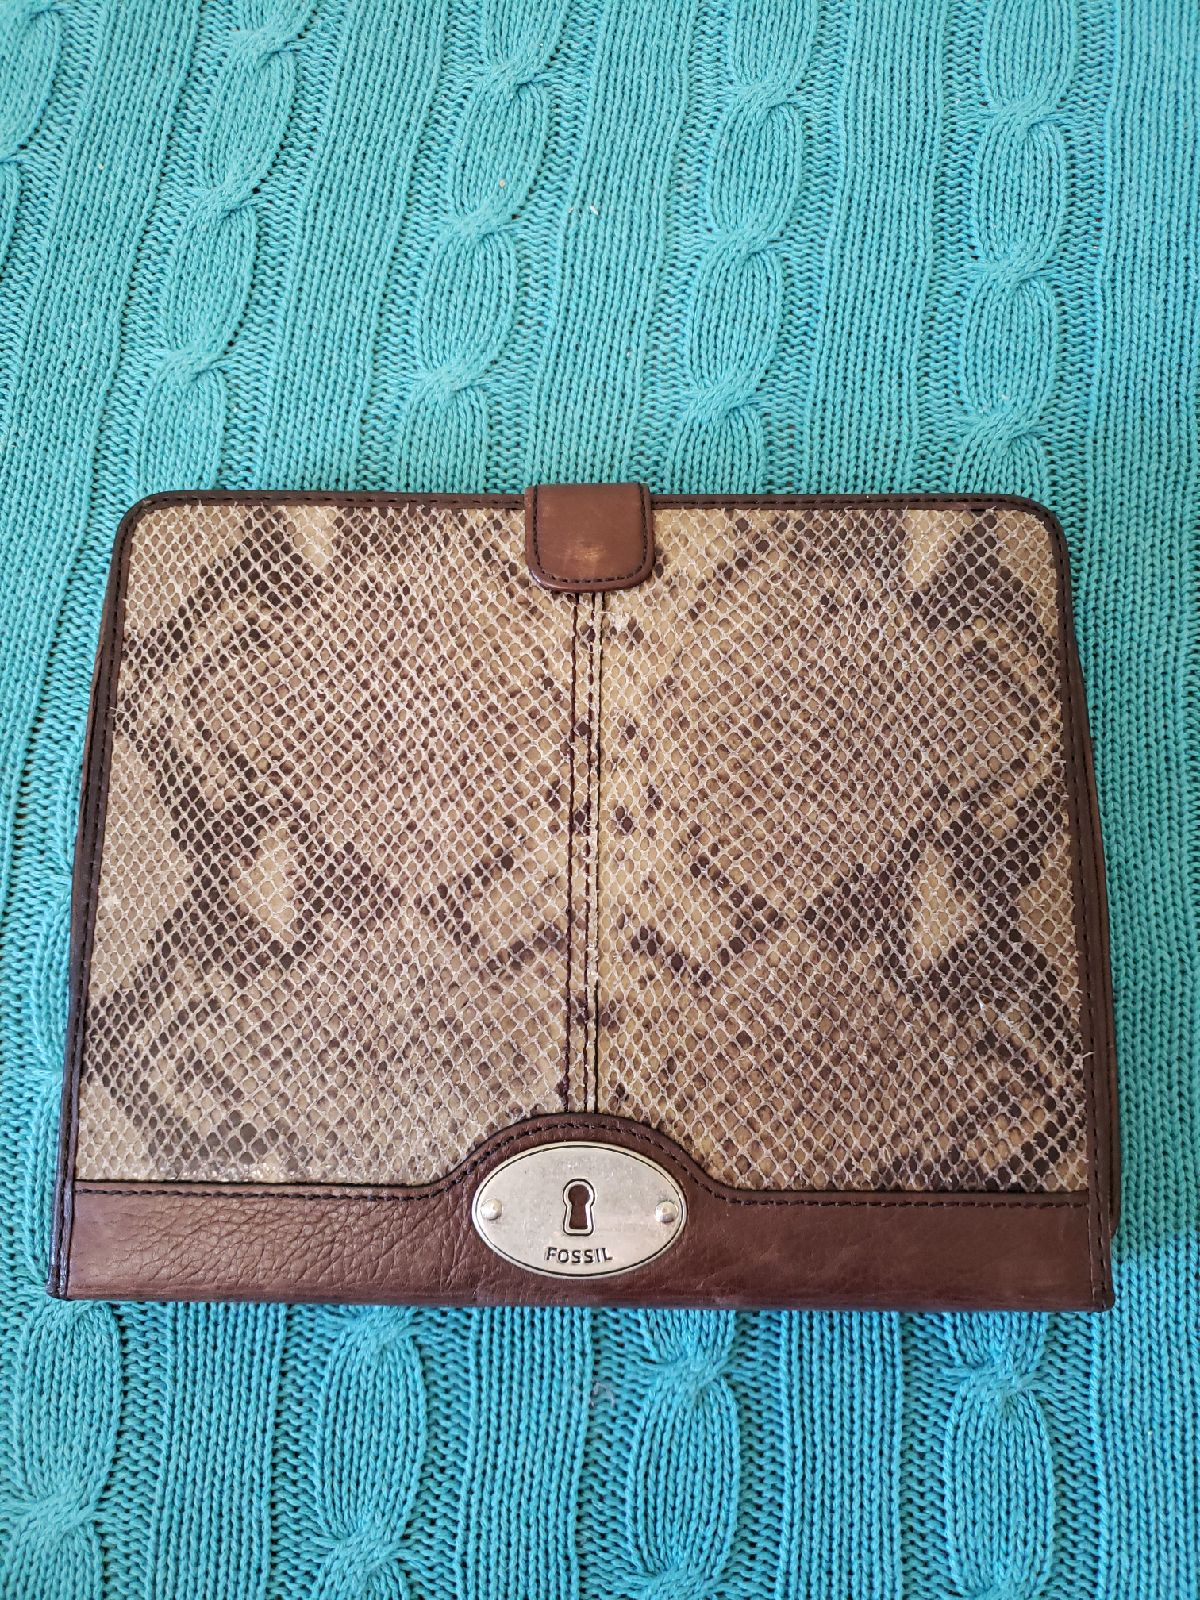 Brown Fossil Tablet iPad case cover